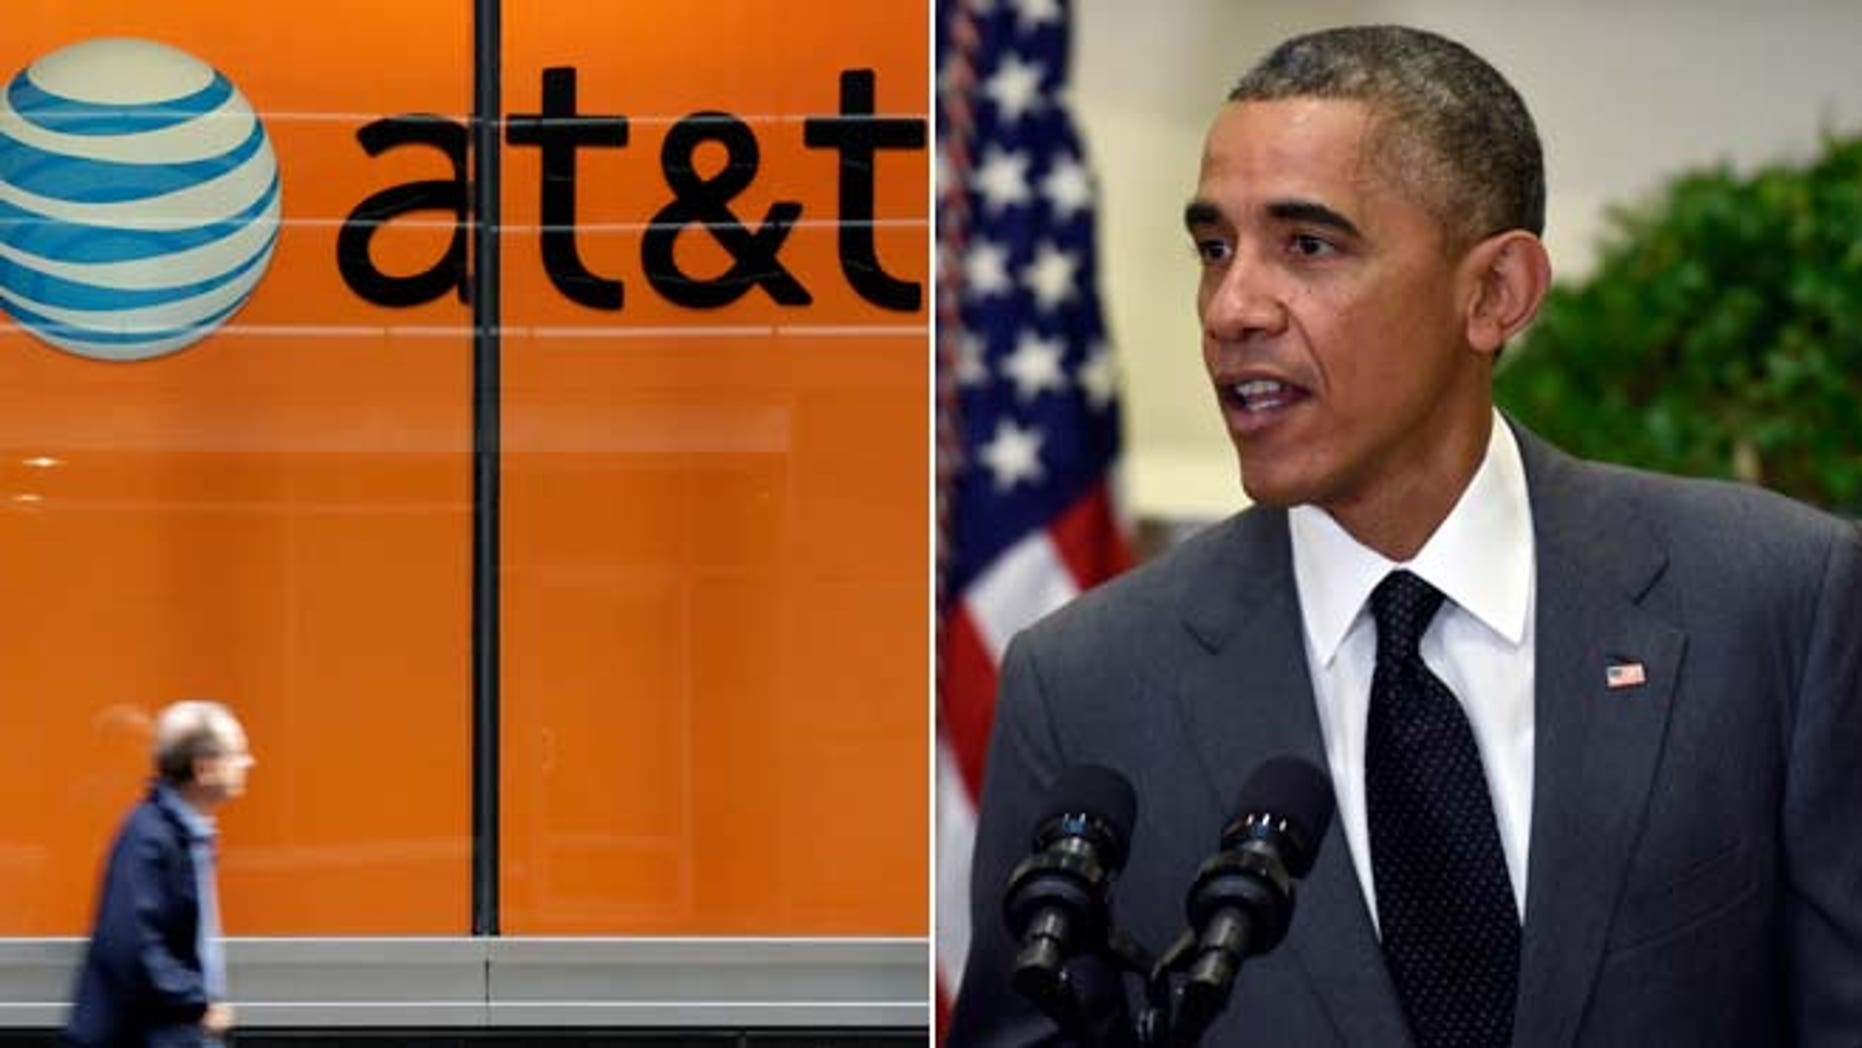 This Tuesday, Oct. 21, 2014 photo shows an AT&T store on New York's Madison Avenue and President Barack Obama on Saturday, Nov. 8, 2014, in the Roosevelt Room of the White House in Washington.